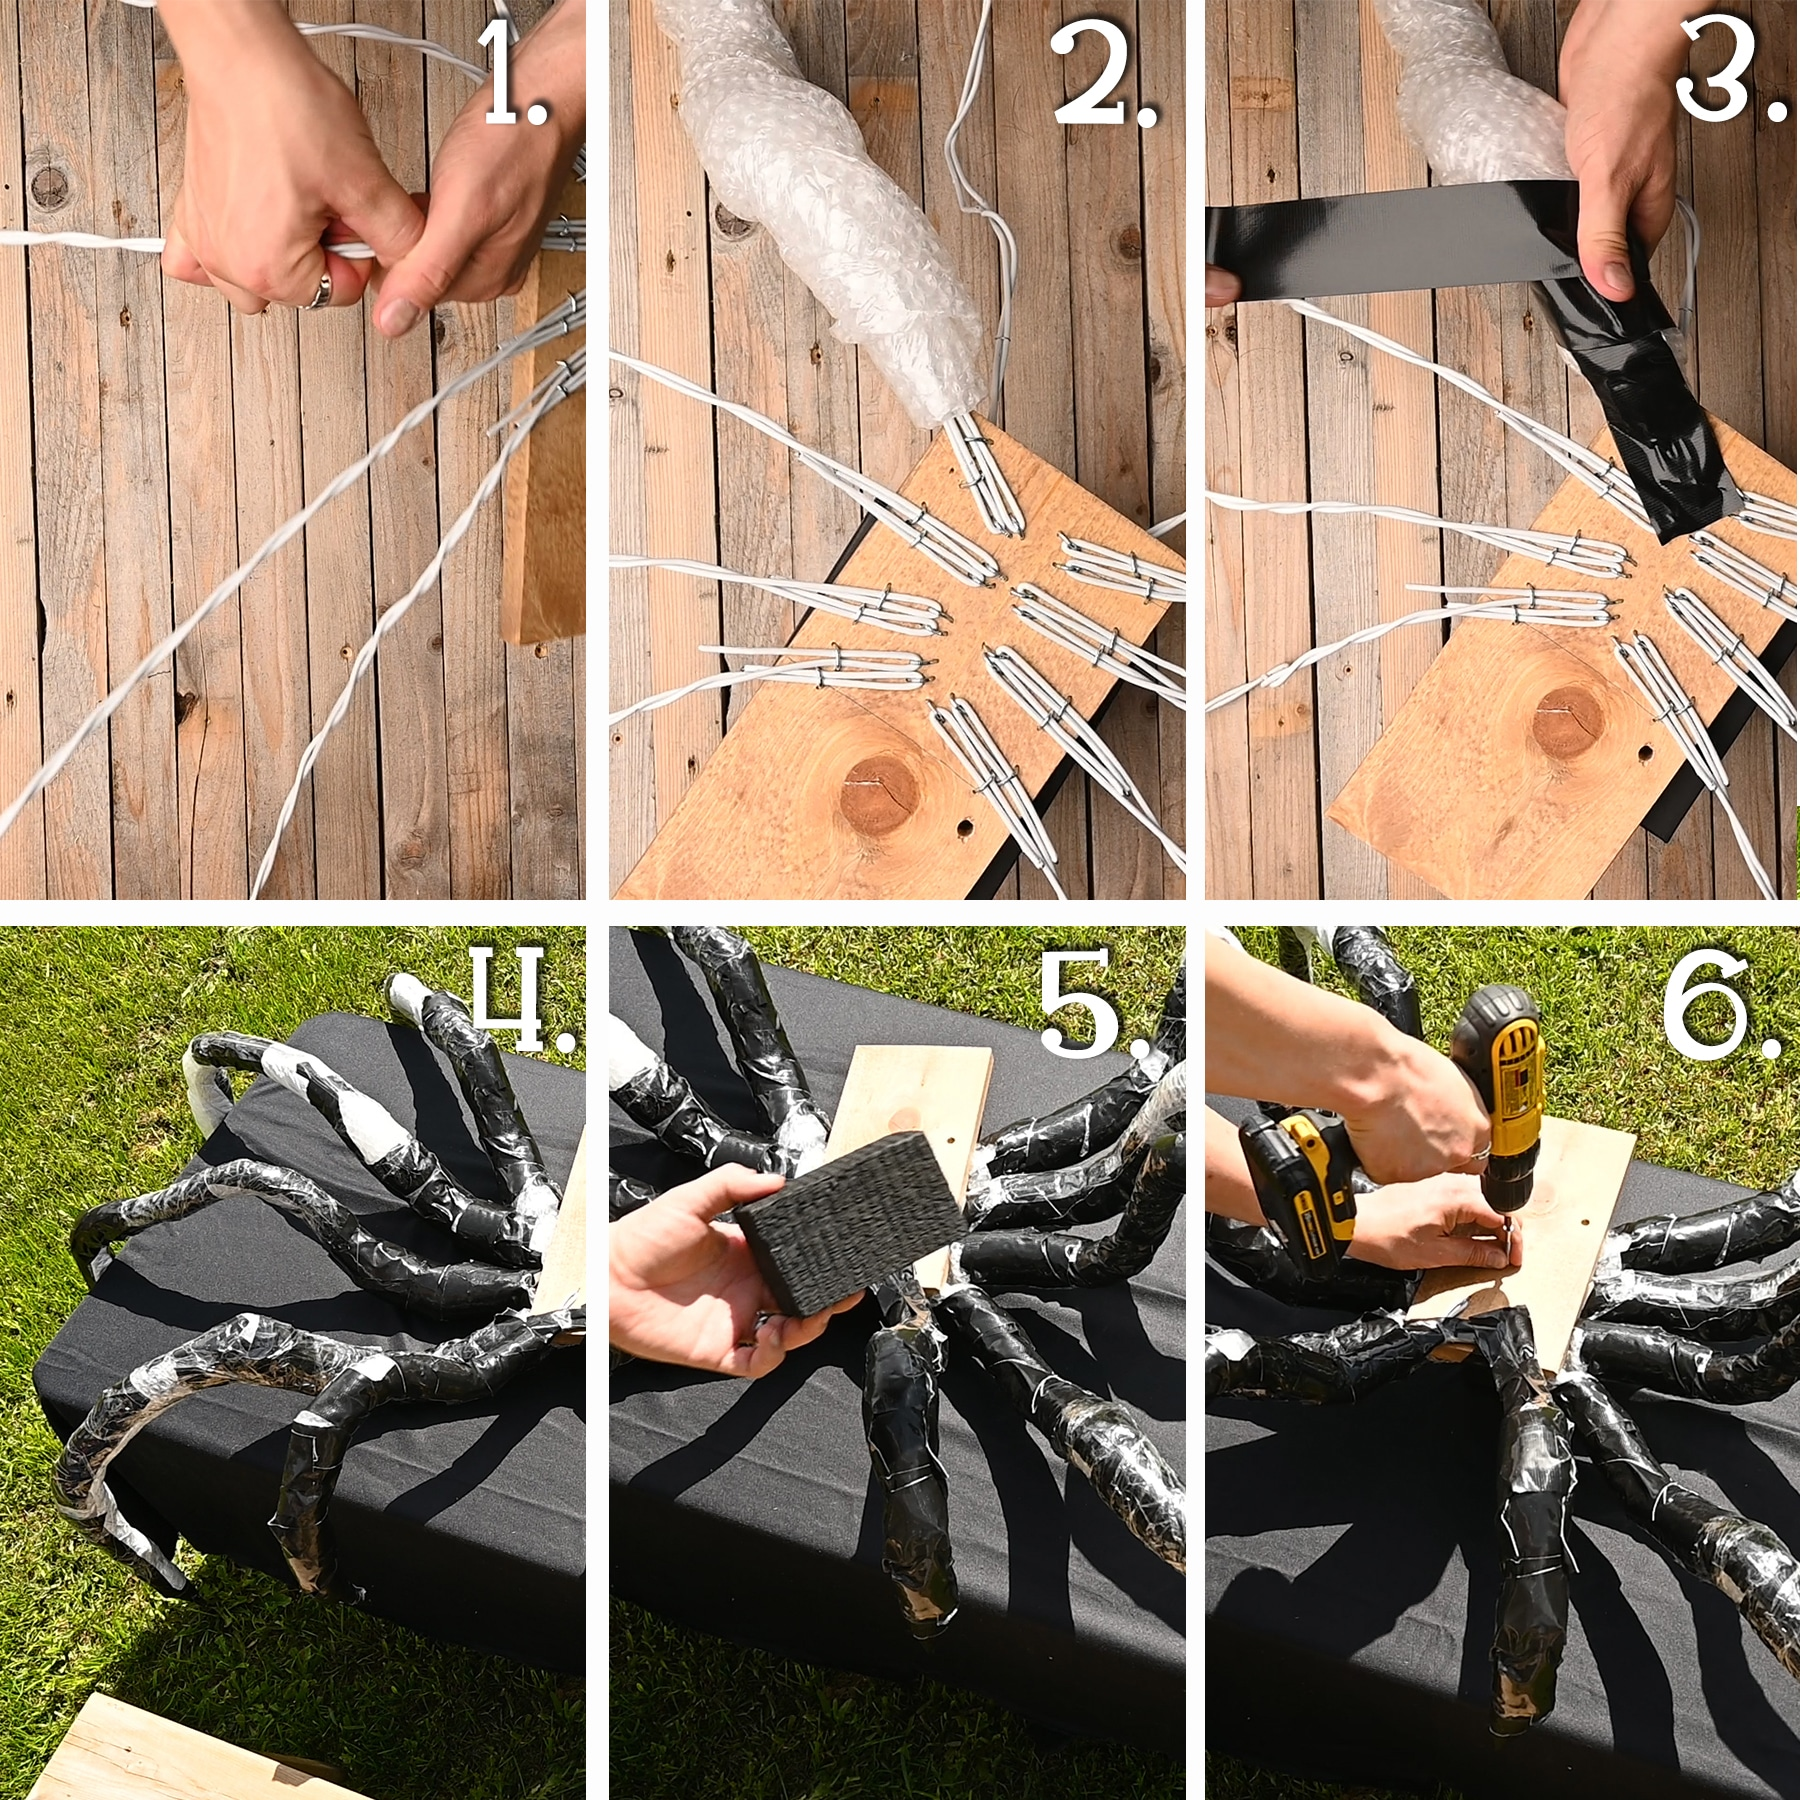 A six panel image showing how to bend the legs into the correct shape, how to wind the bubble wrap around the leg and attach with tape.  The image also shows how to attach the small piece of wood under the spider for stablization